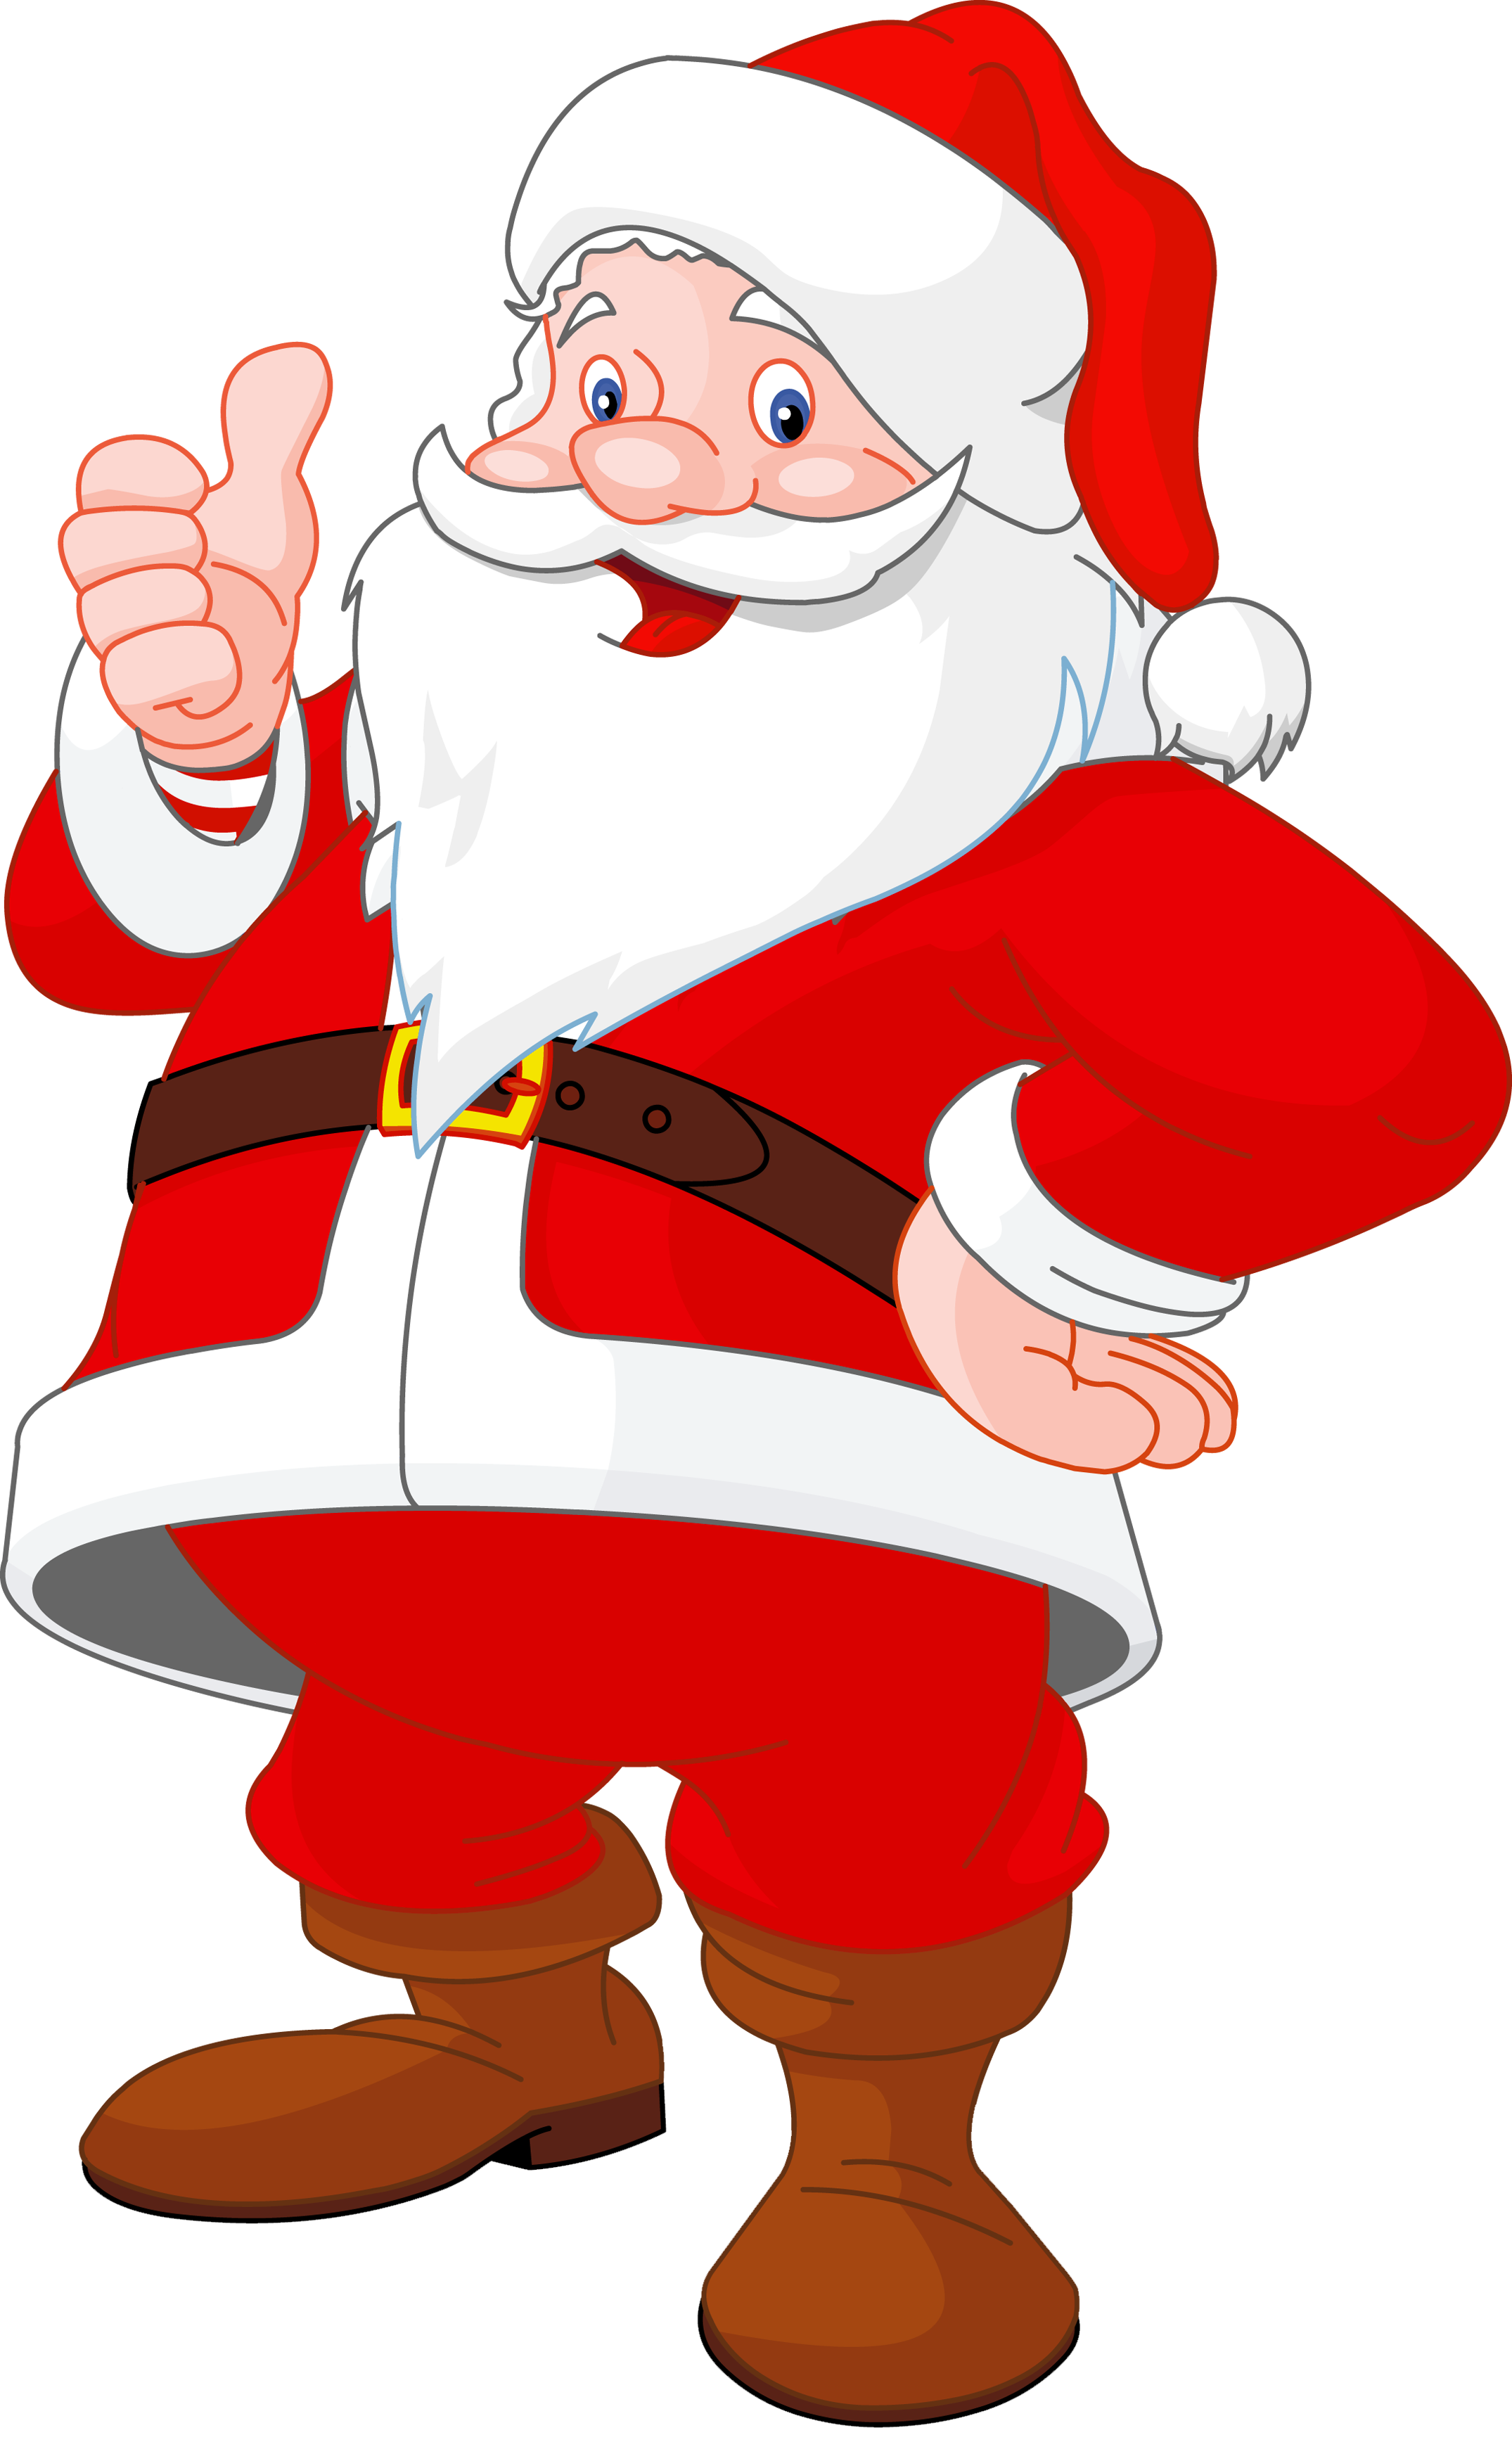 Transparent Santa Claus | Gallery Yopriceville - High-Quality Images and  Transparent PNG Free Clipart